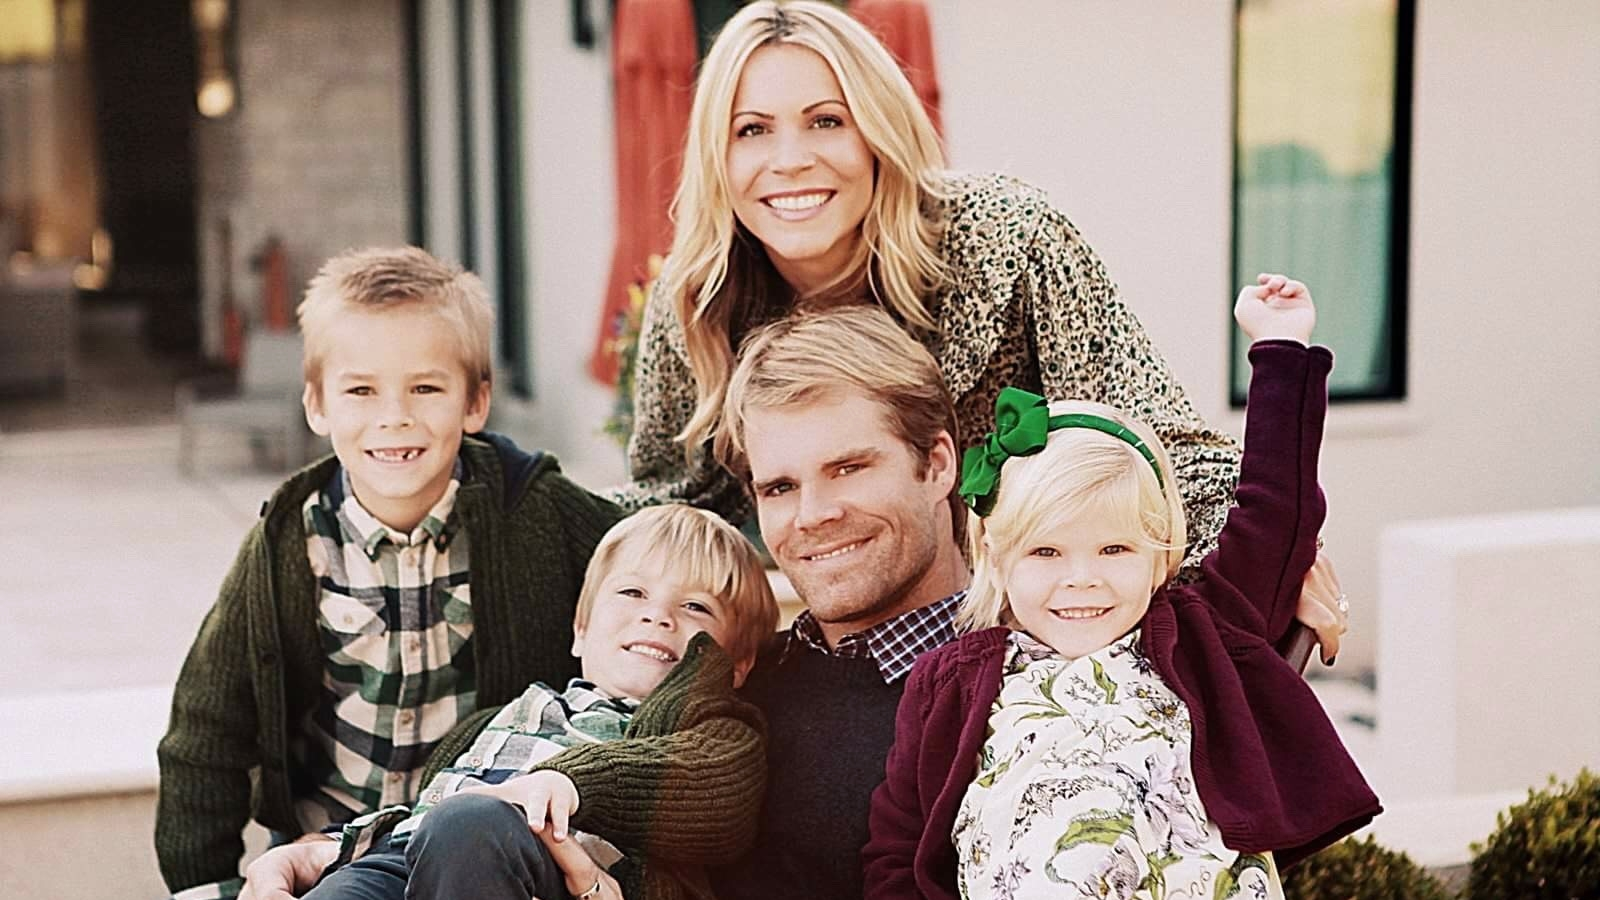 Carolina Panthers' tight end Greg Olsen has accomplished things on the football field no other tight end in NFL history has done. But even after leading his team to Super Bowl 50, the three-time Pro Bowler lends his support and time to a cause close to his heart and the hearts of many others.